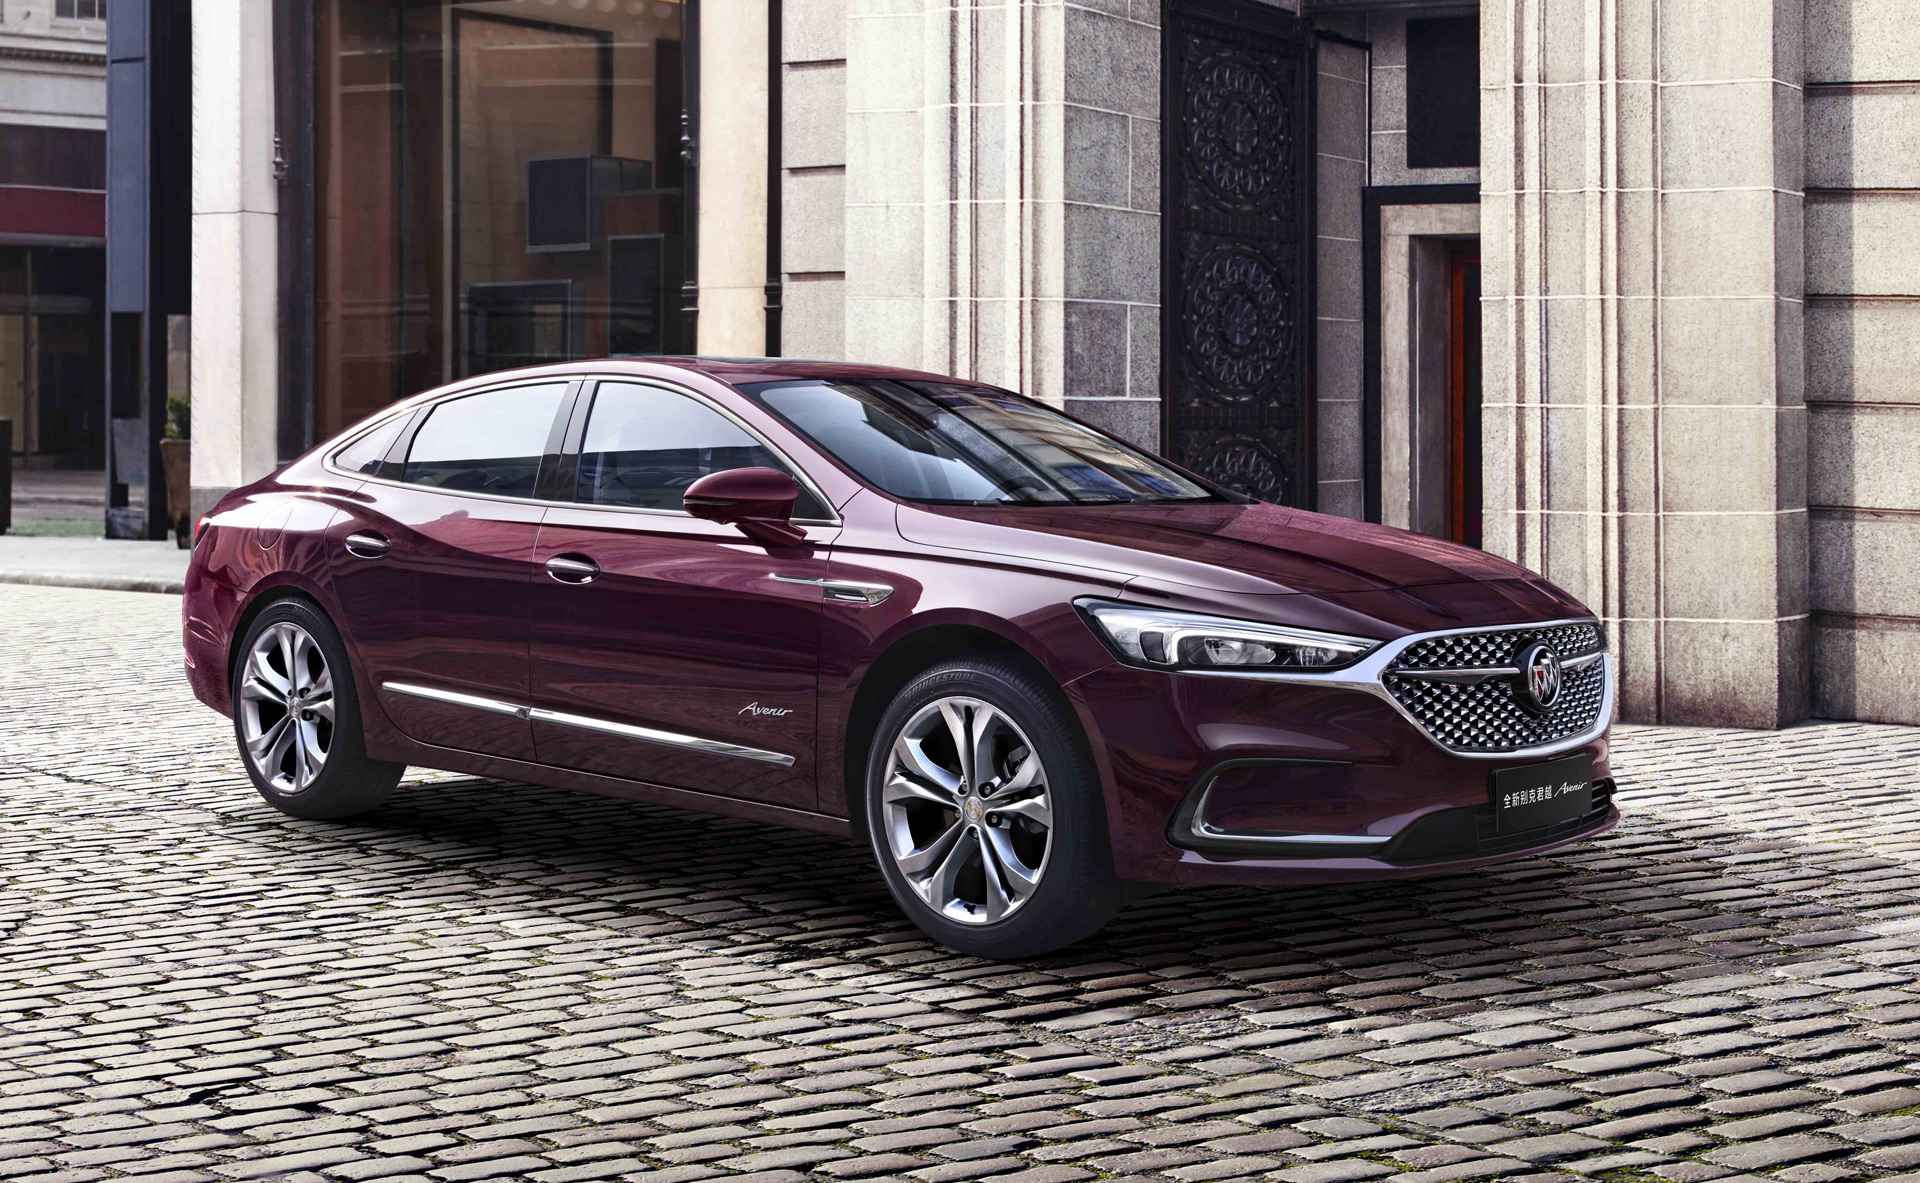 2020 Buick Lacrosse Made Handsome Just As It's Dropped In Us 2022 Buick Lacrosse Images, Inside, Length